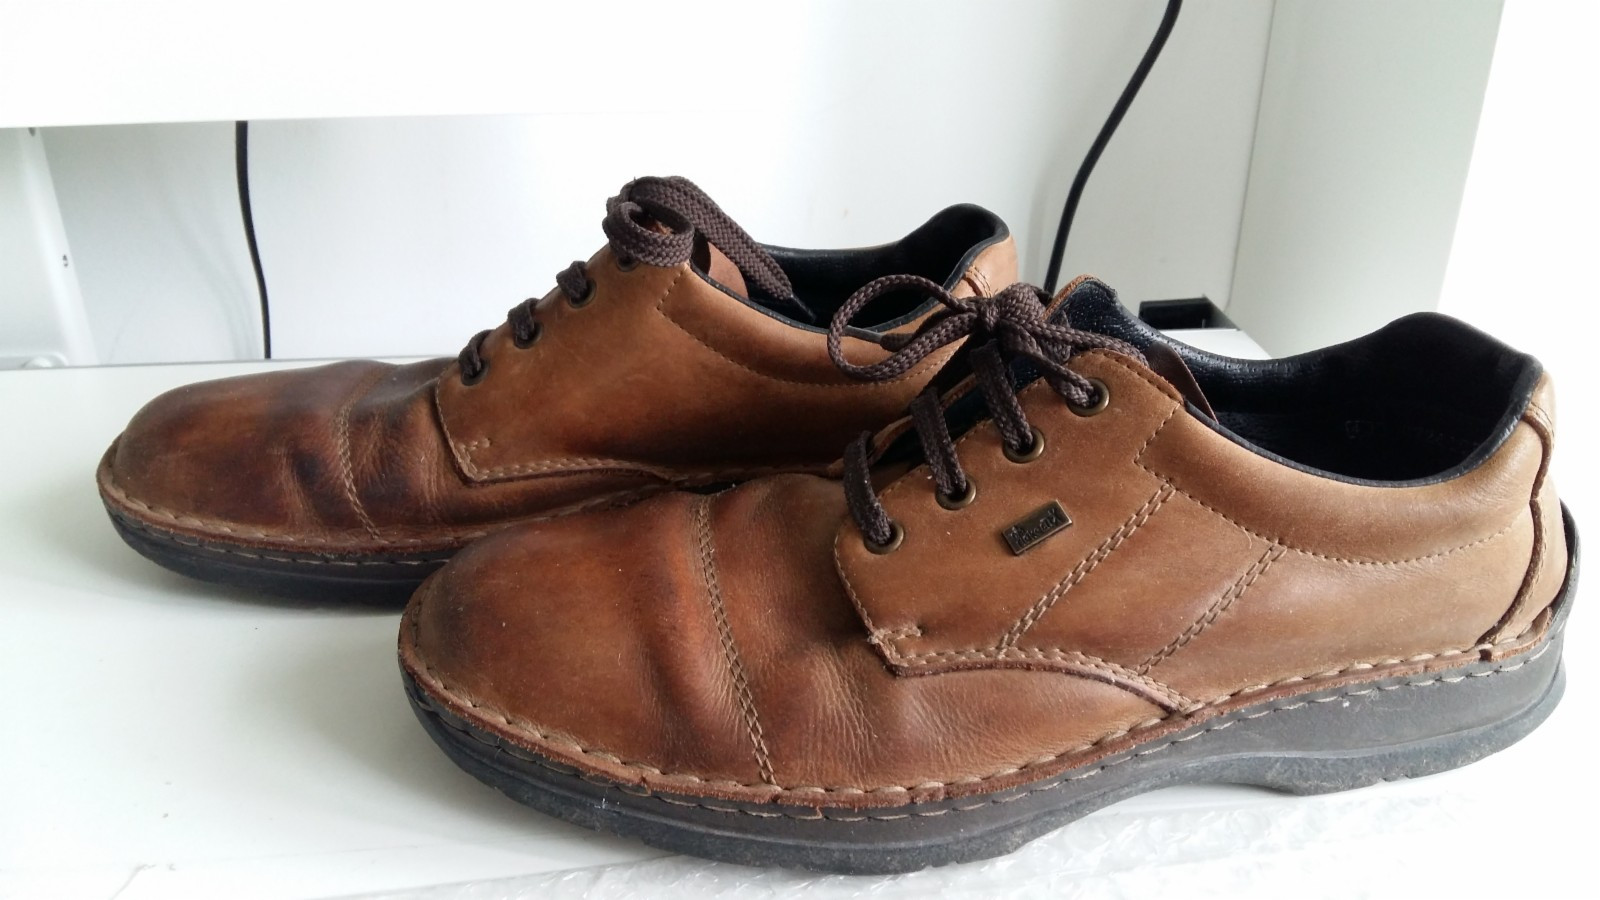 Herre Skin Sko str 43 , tan leather men shoe | FINN.no